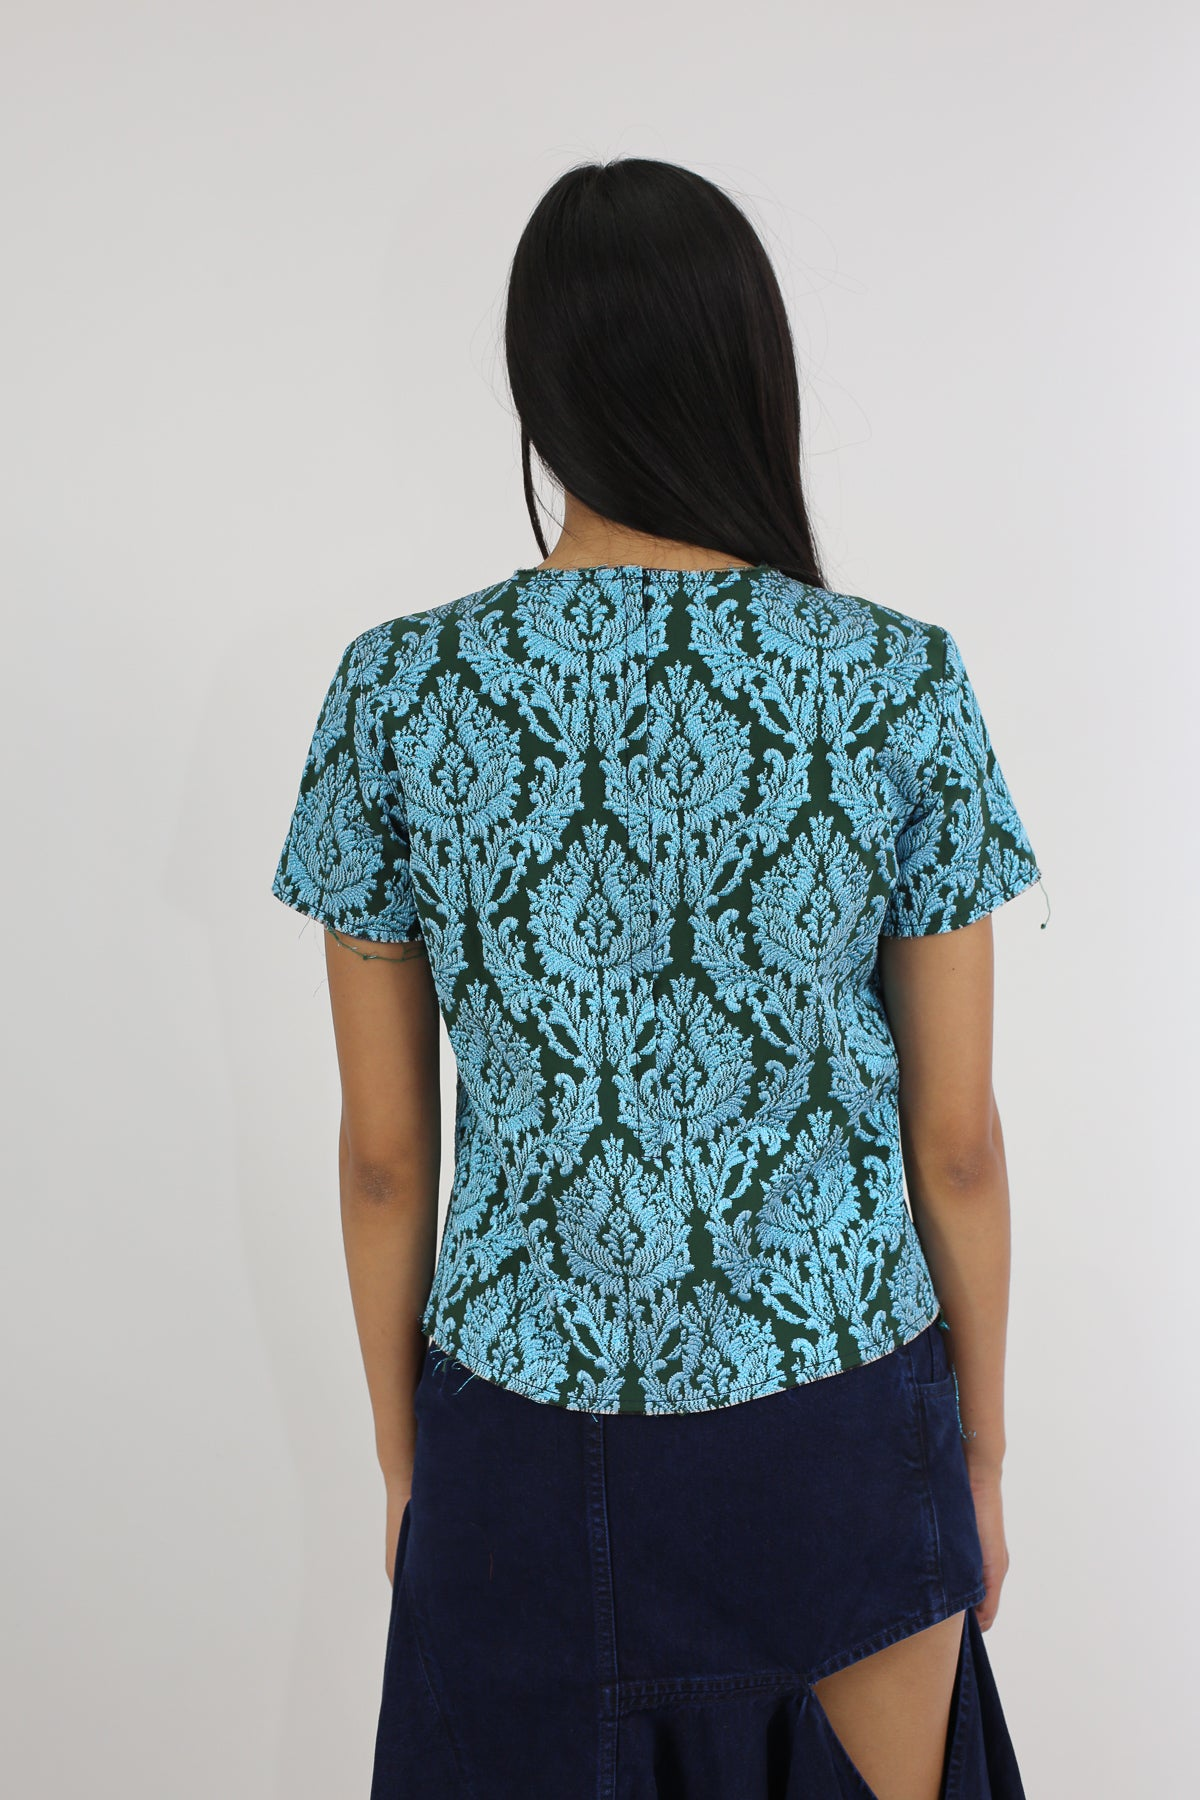 PRE-OWNED / BLACK AND BLUE BROCADE CAP SLEEVE